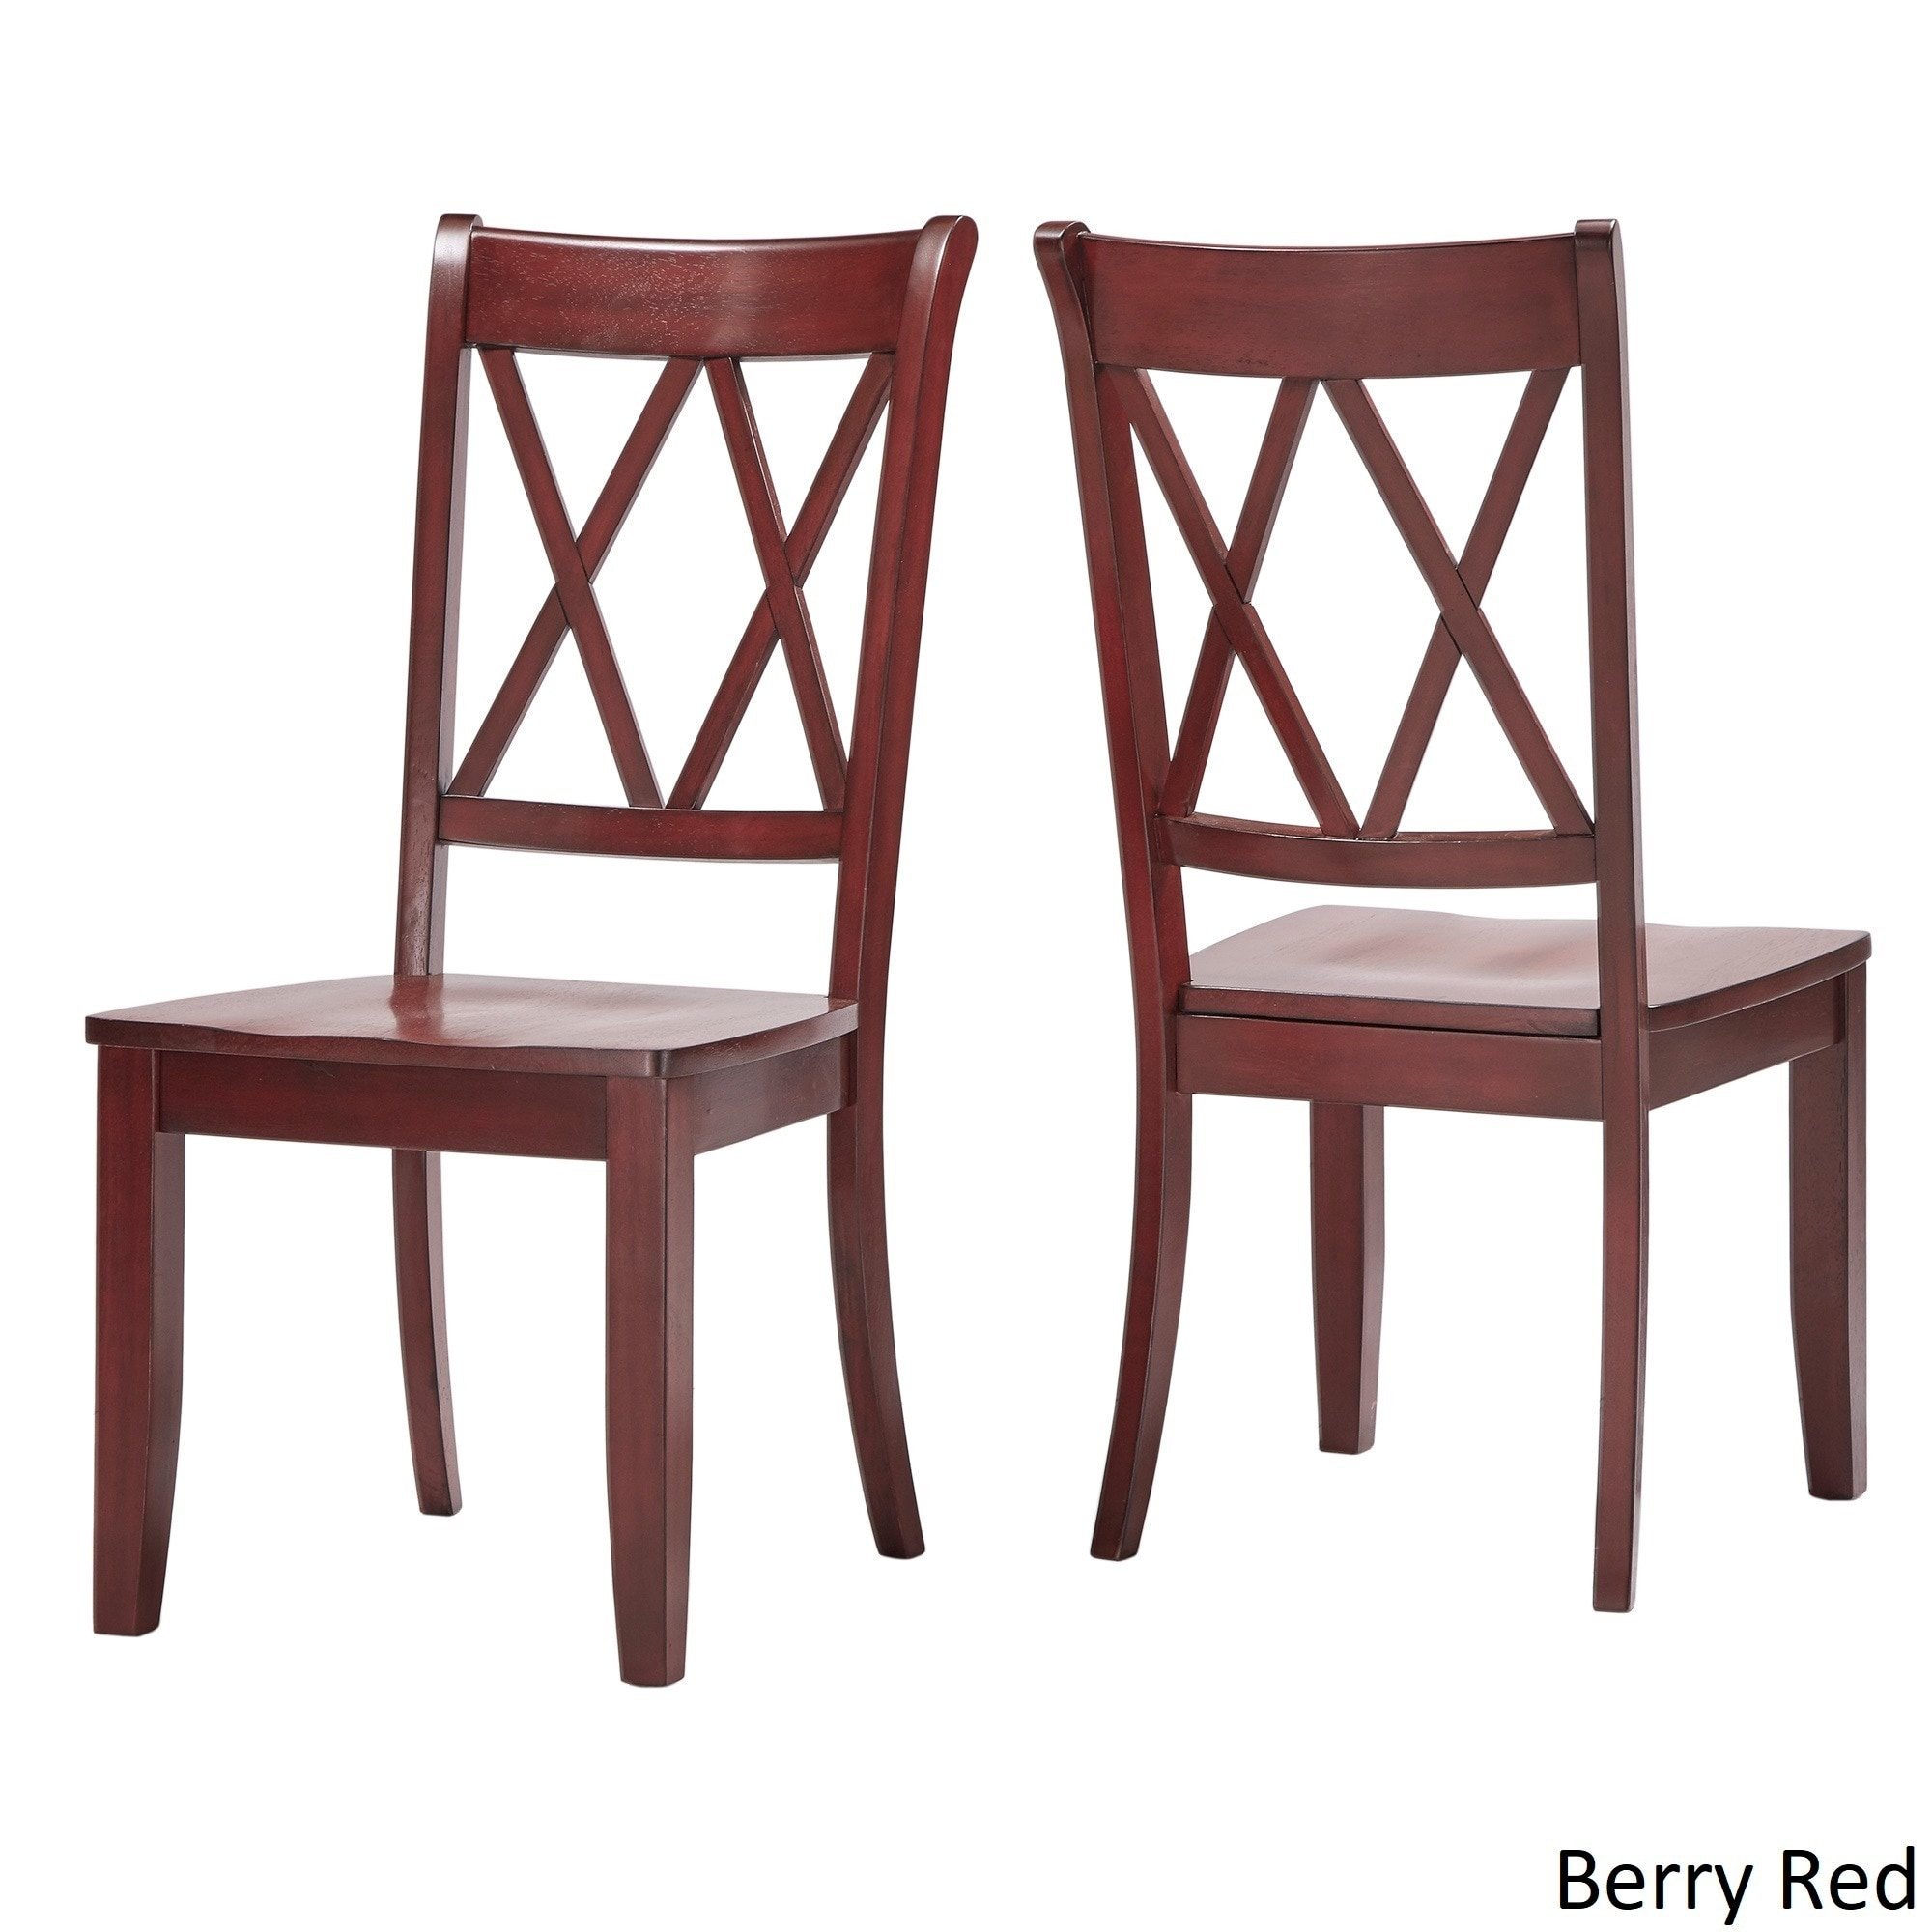 Eleanor Double X Back Wood Dining Chair Set Of 2 By Inspire Q Clic Free Shipping Today 13469140